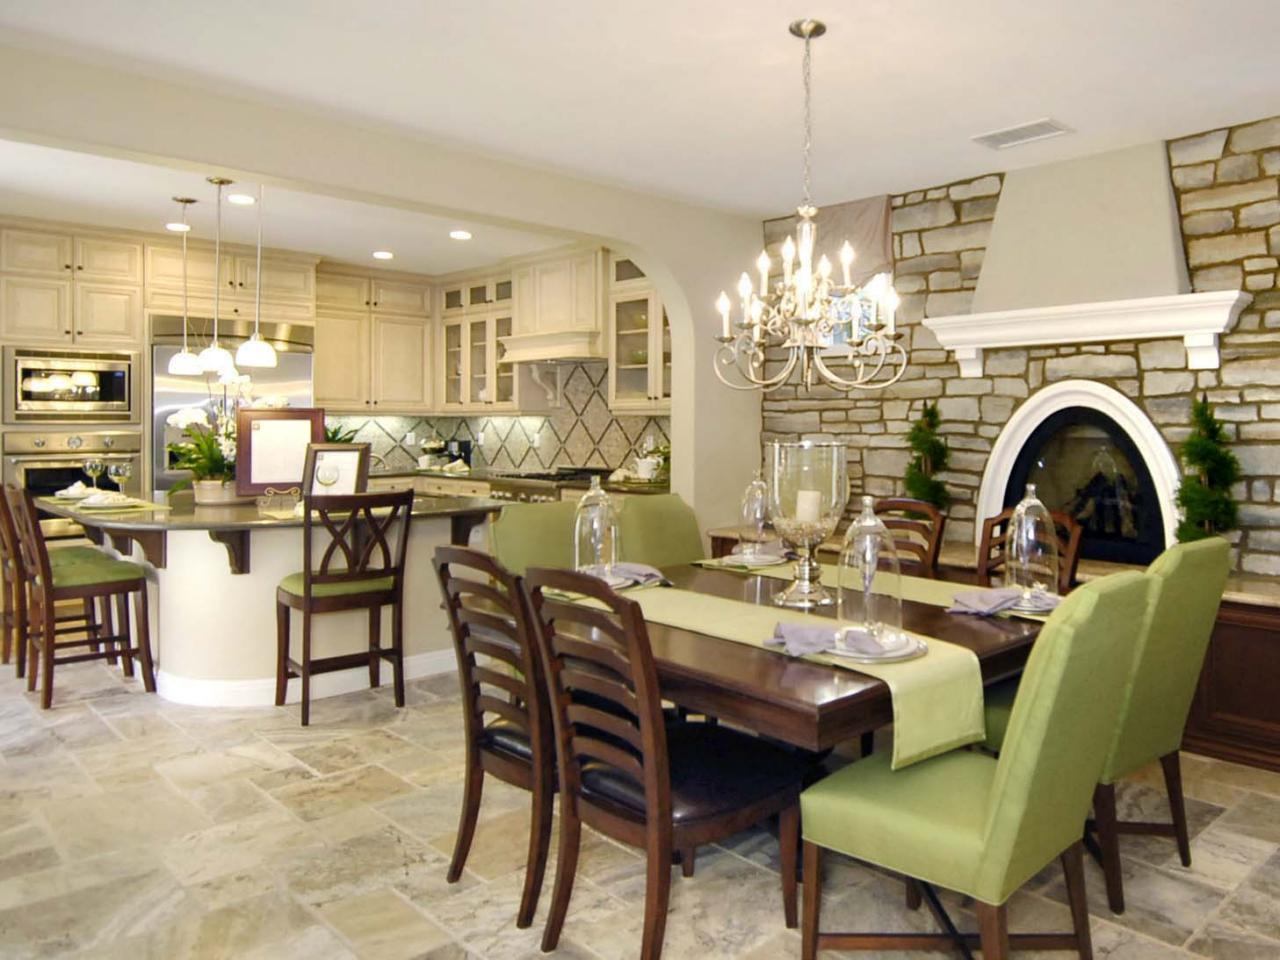 90 Stunning Dining Rooms With Chandeliers Pictures: Beautiful Chandeliers And Dining Tables